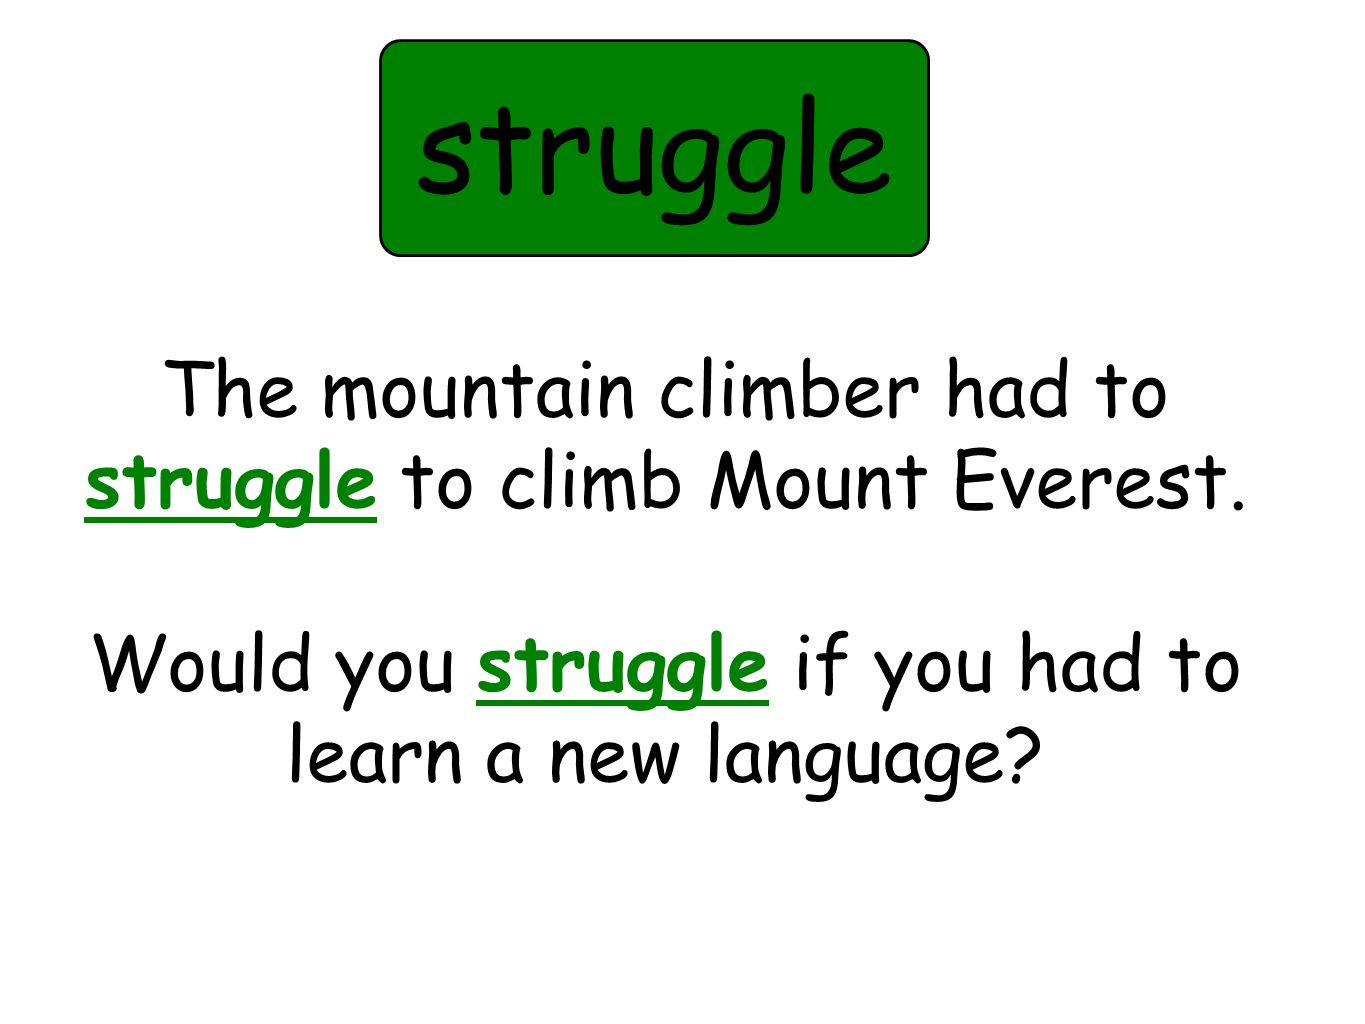 The mountain climber had to struggle to climb Mount Everest.